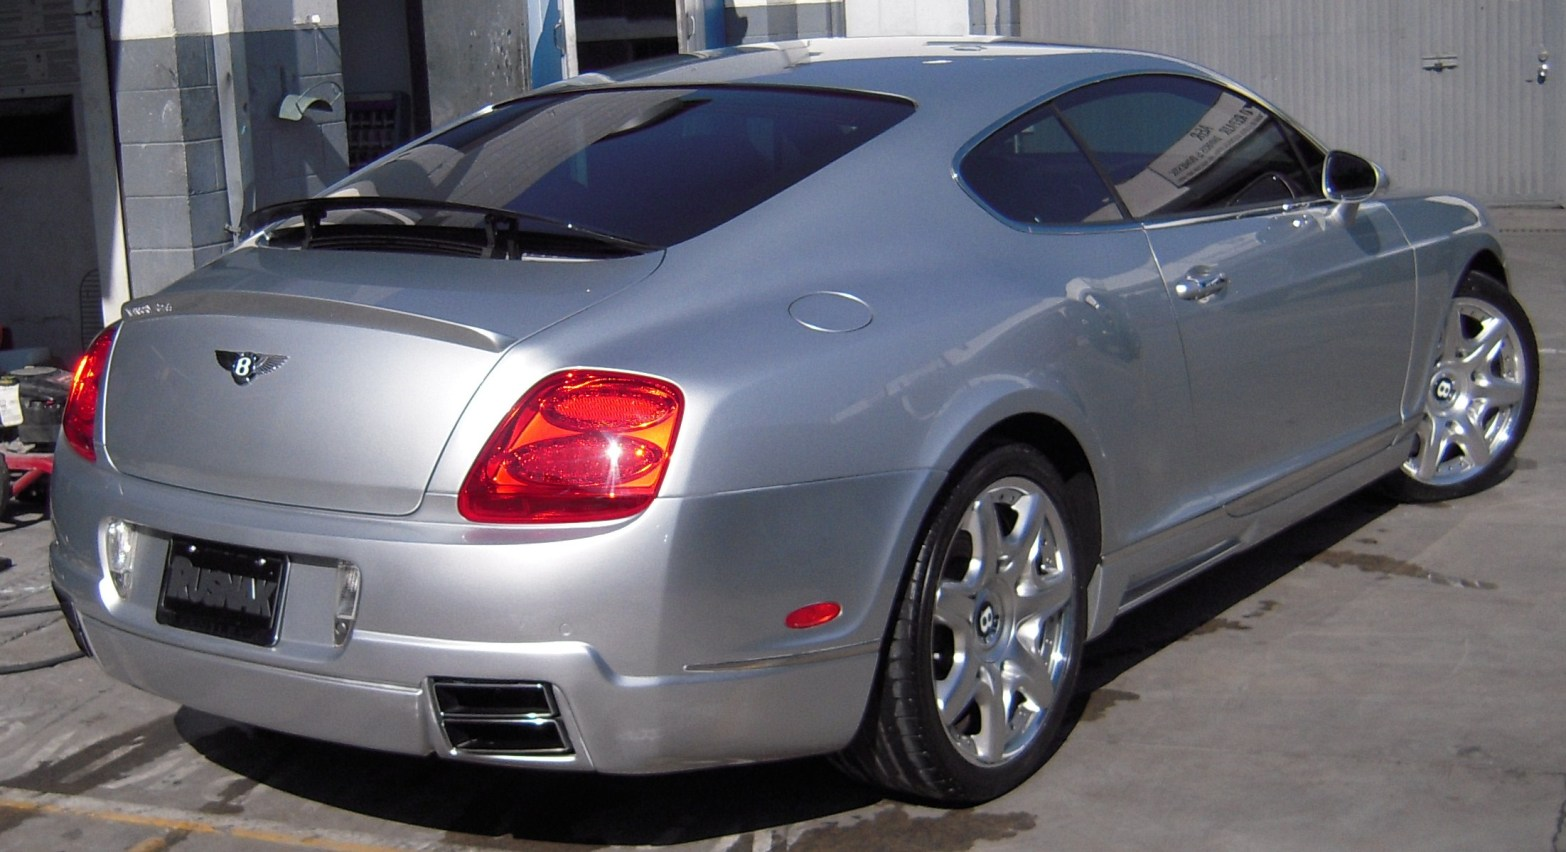 west-coast-body-and-paint-gray-bentley-5